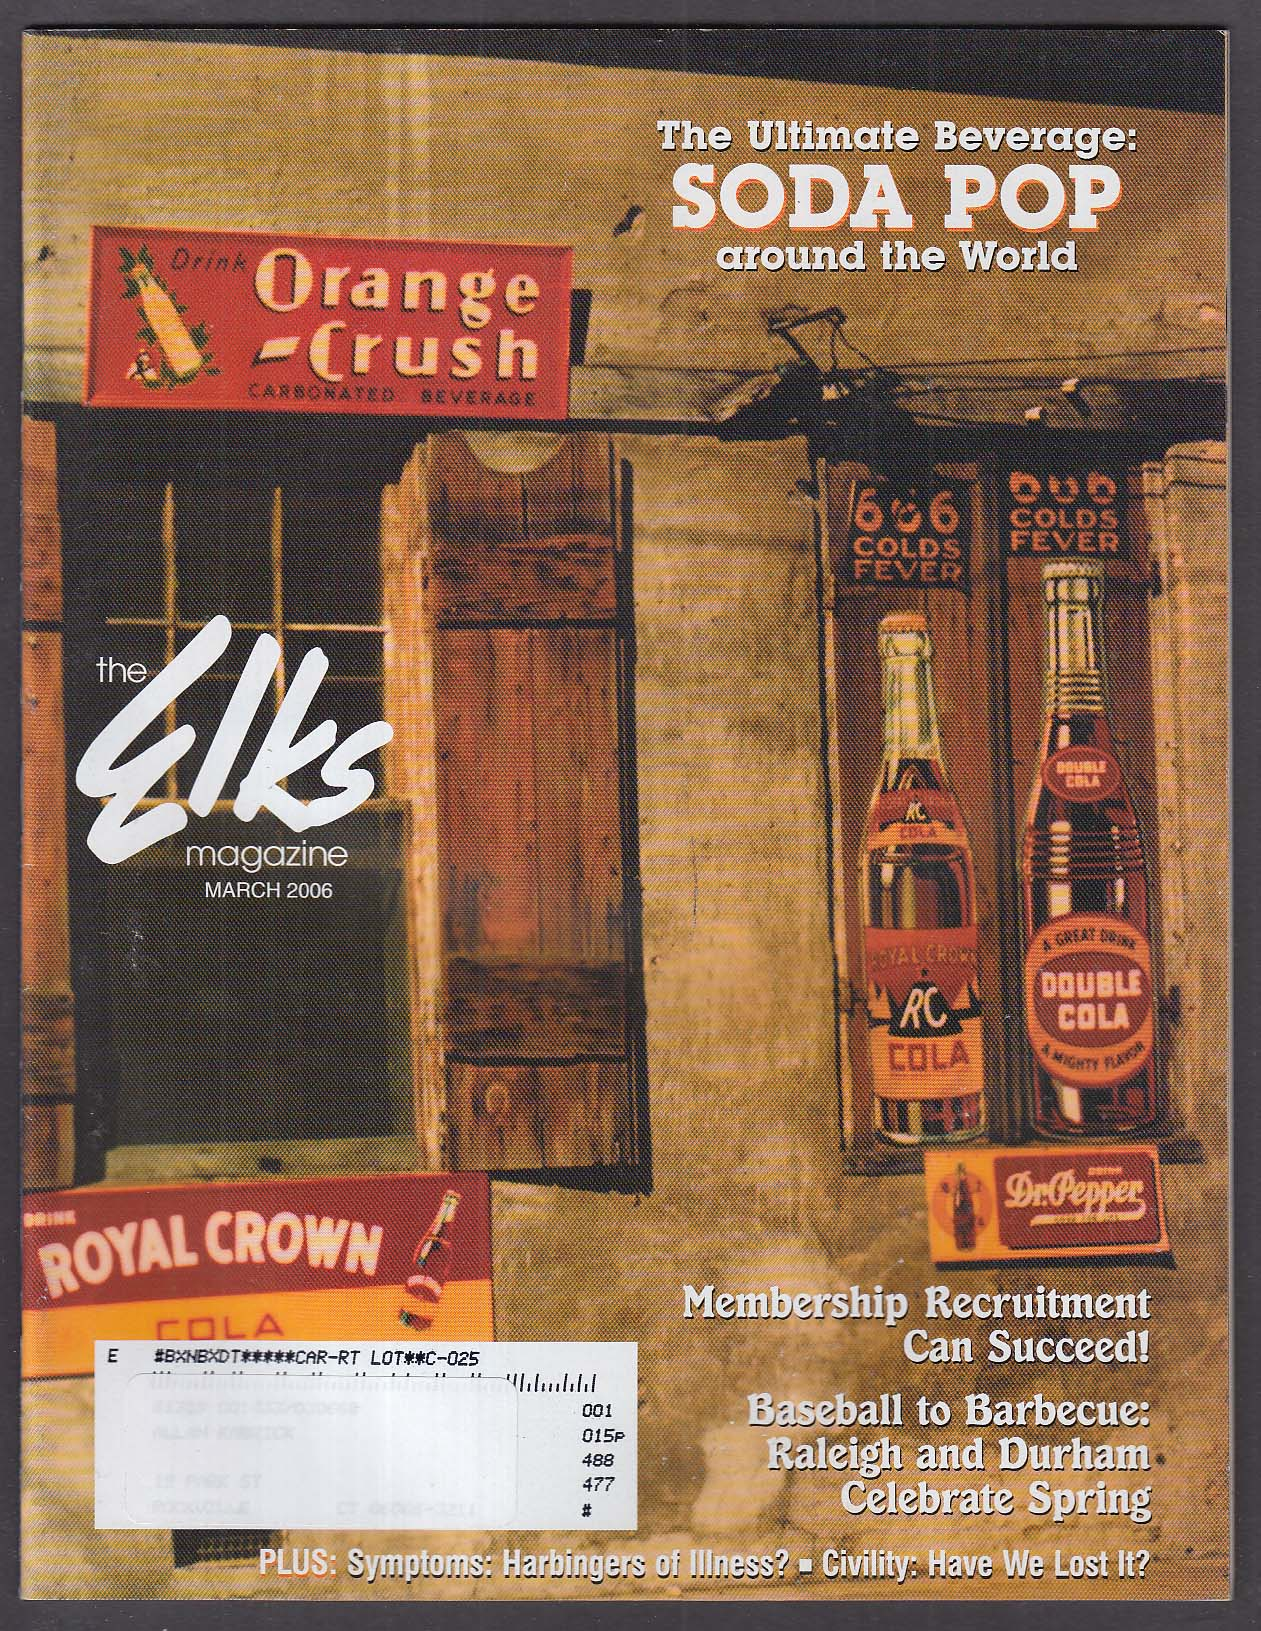 ELKS Raleigh & Durham NC; Drug Awareness; Soda Pop Retrospective + 3 2006